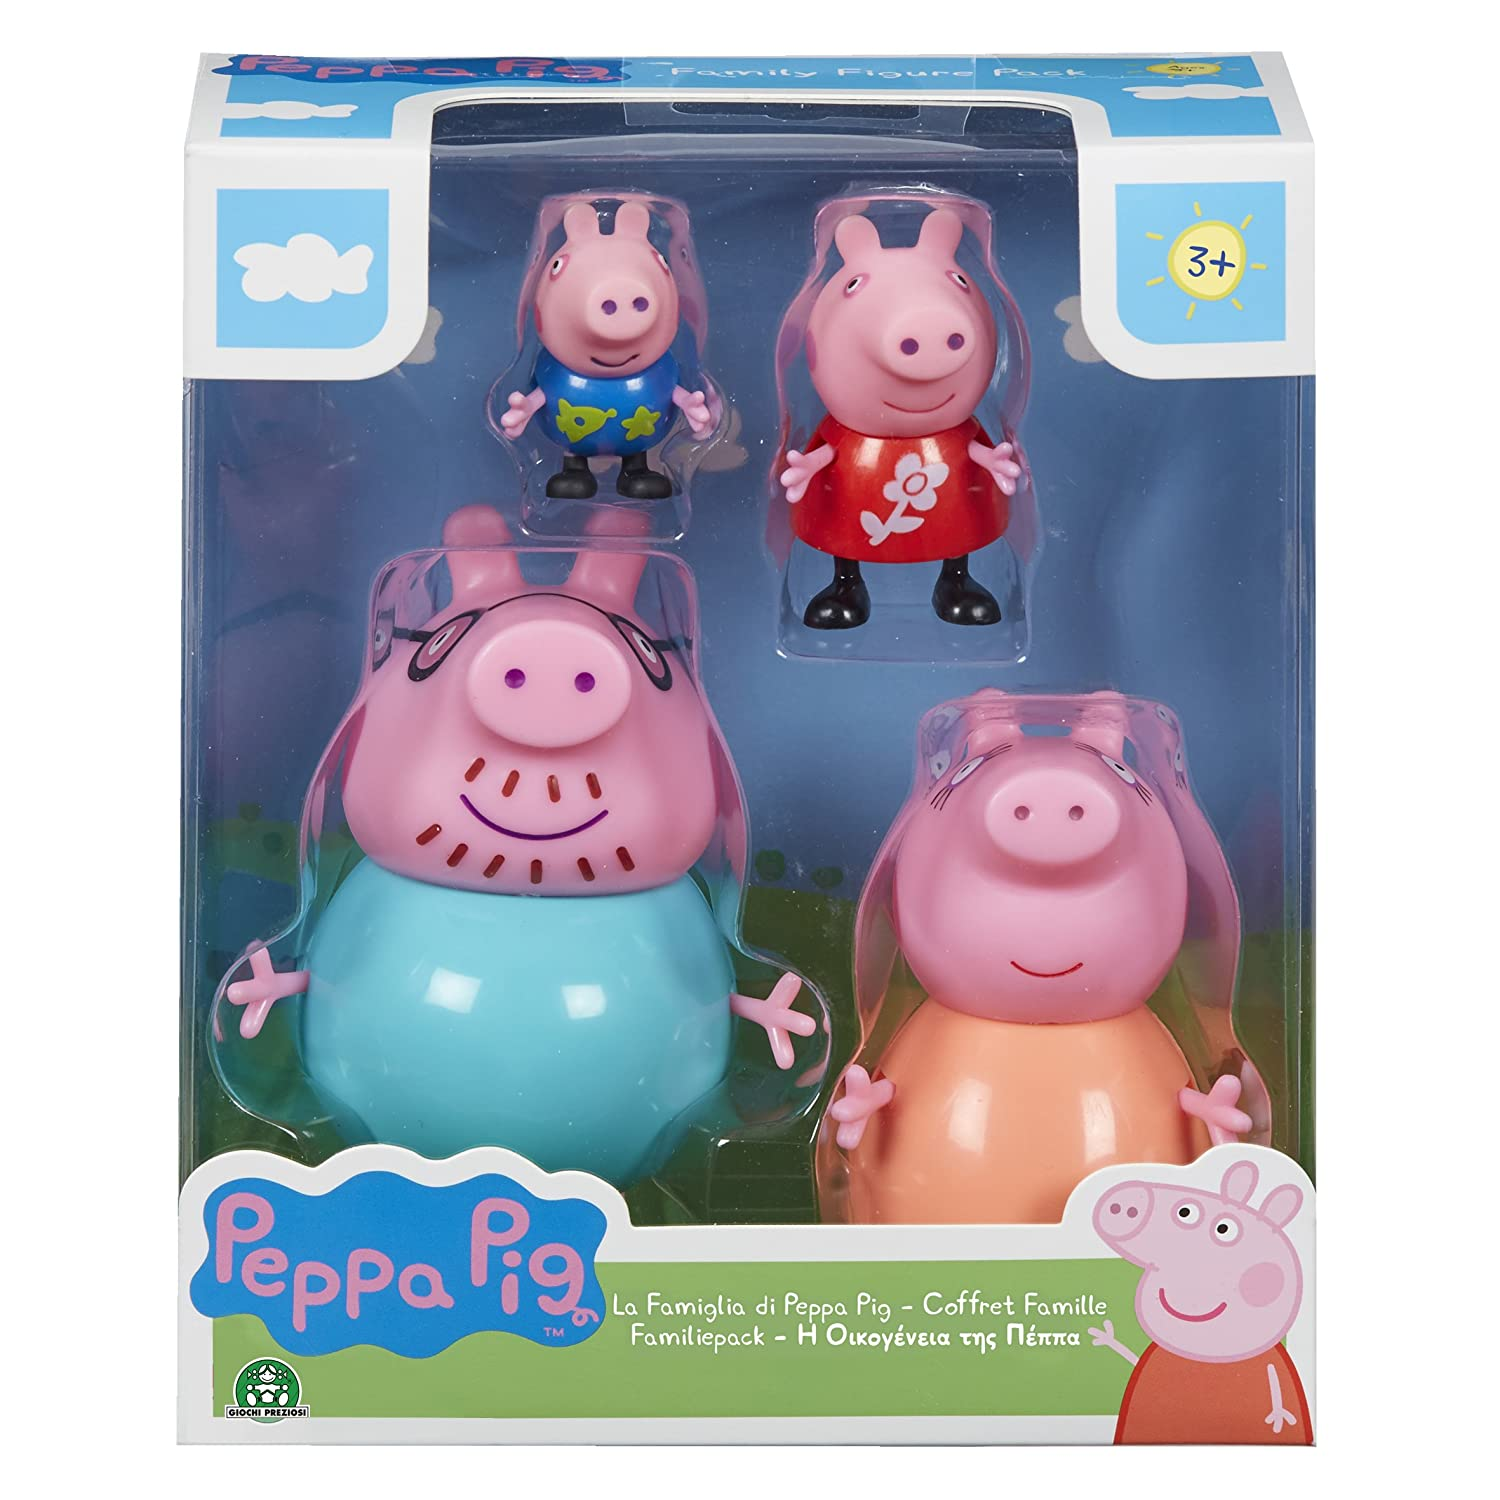 Coffret Peppa Coffret Pig Pig Peppa Famille4 FigurinesPpc27MulticoloreAmazon DeE9HWY2Ib